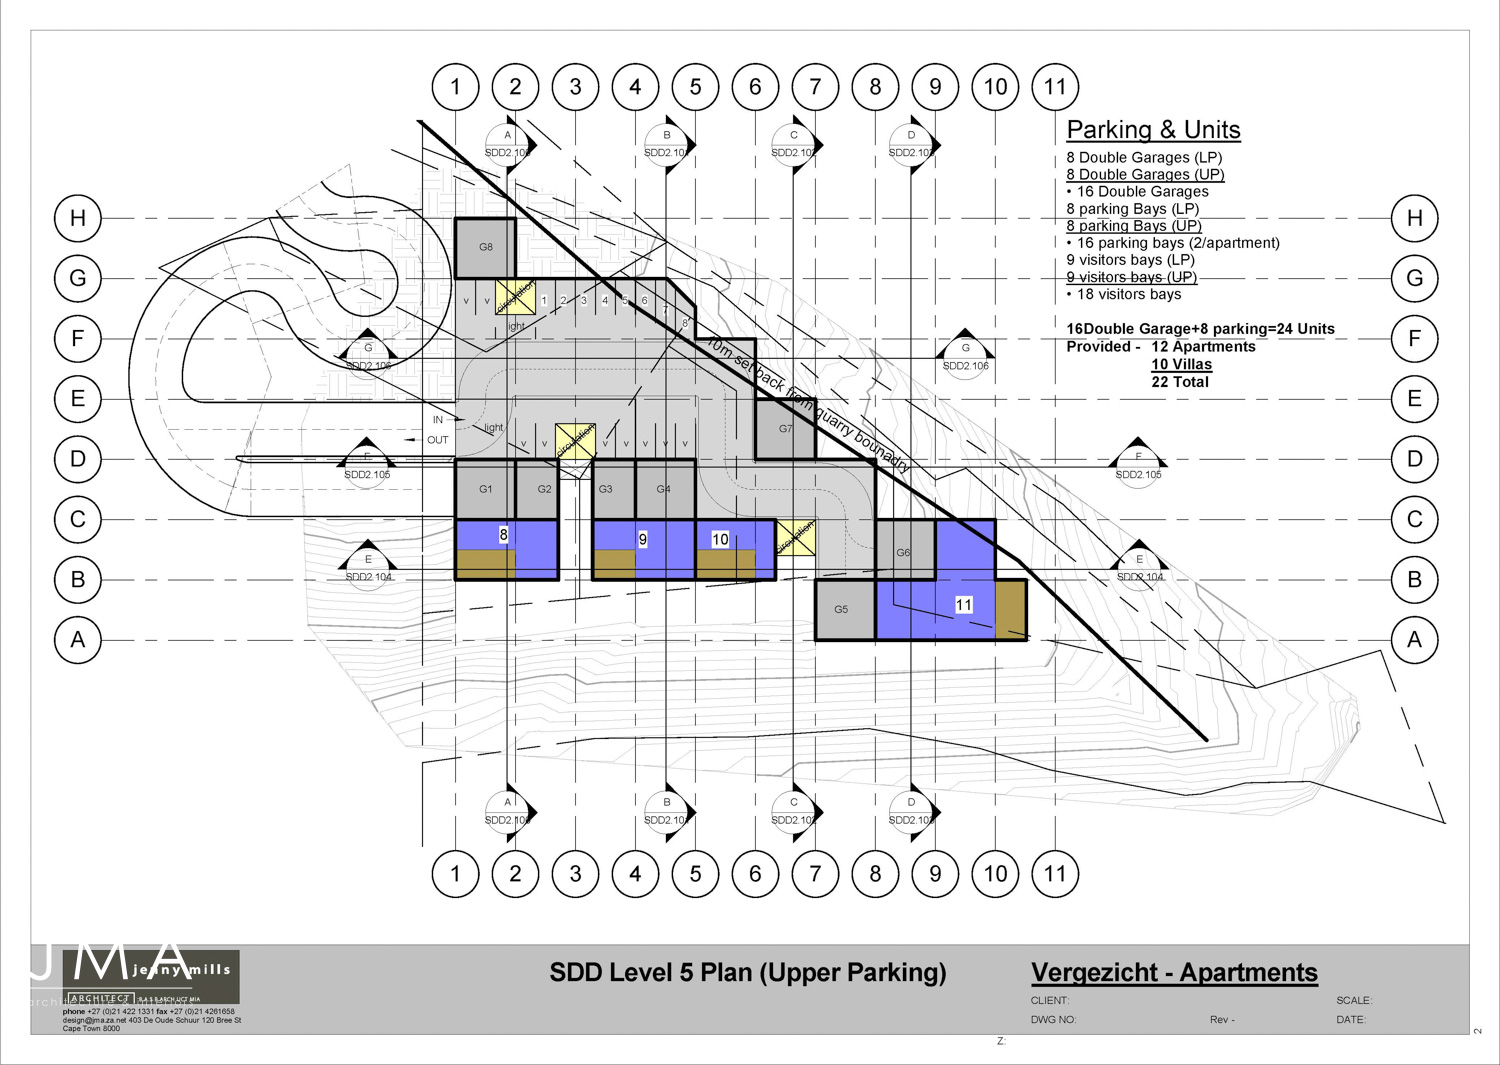 Vergezicht Cape Town development of Villas & Apartments Level 5 Plan (Upper Parking) designed by Jenny Mills Architects